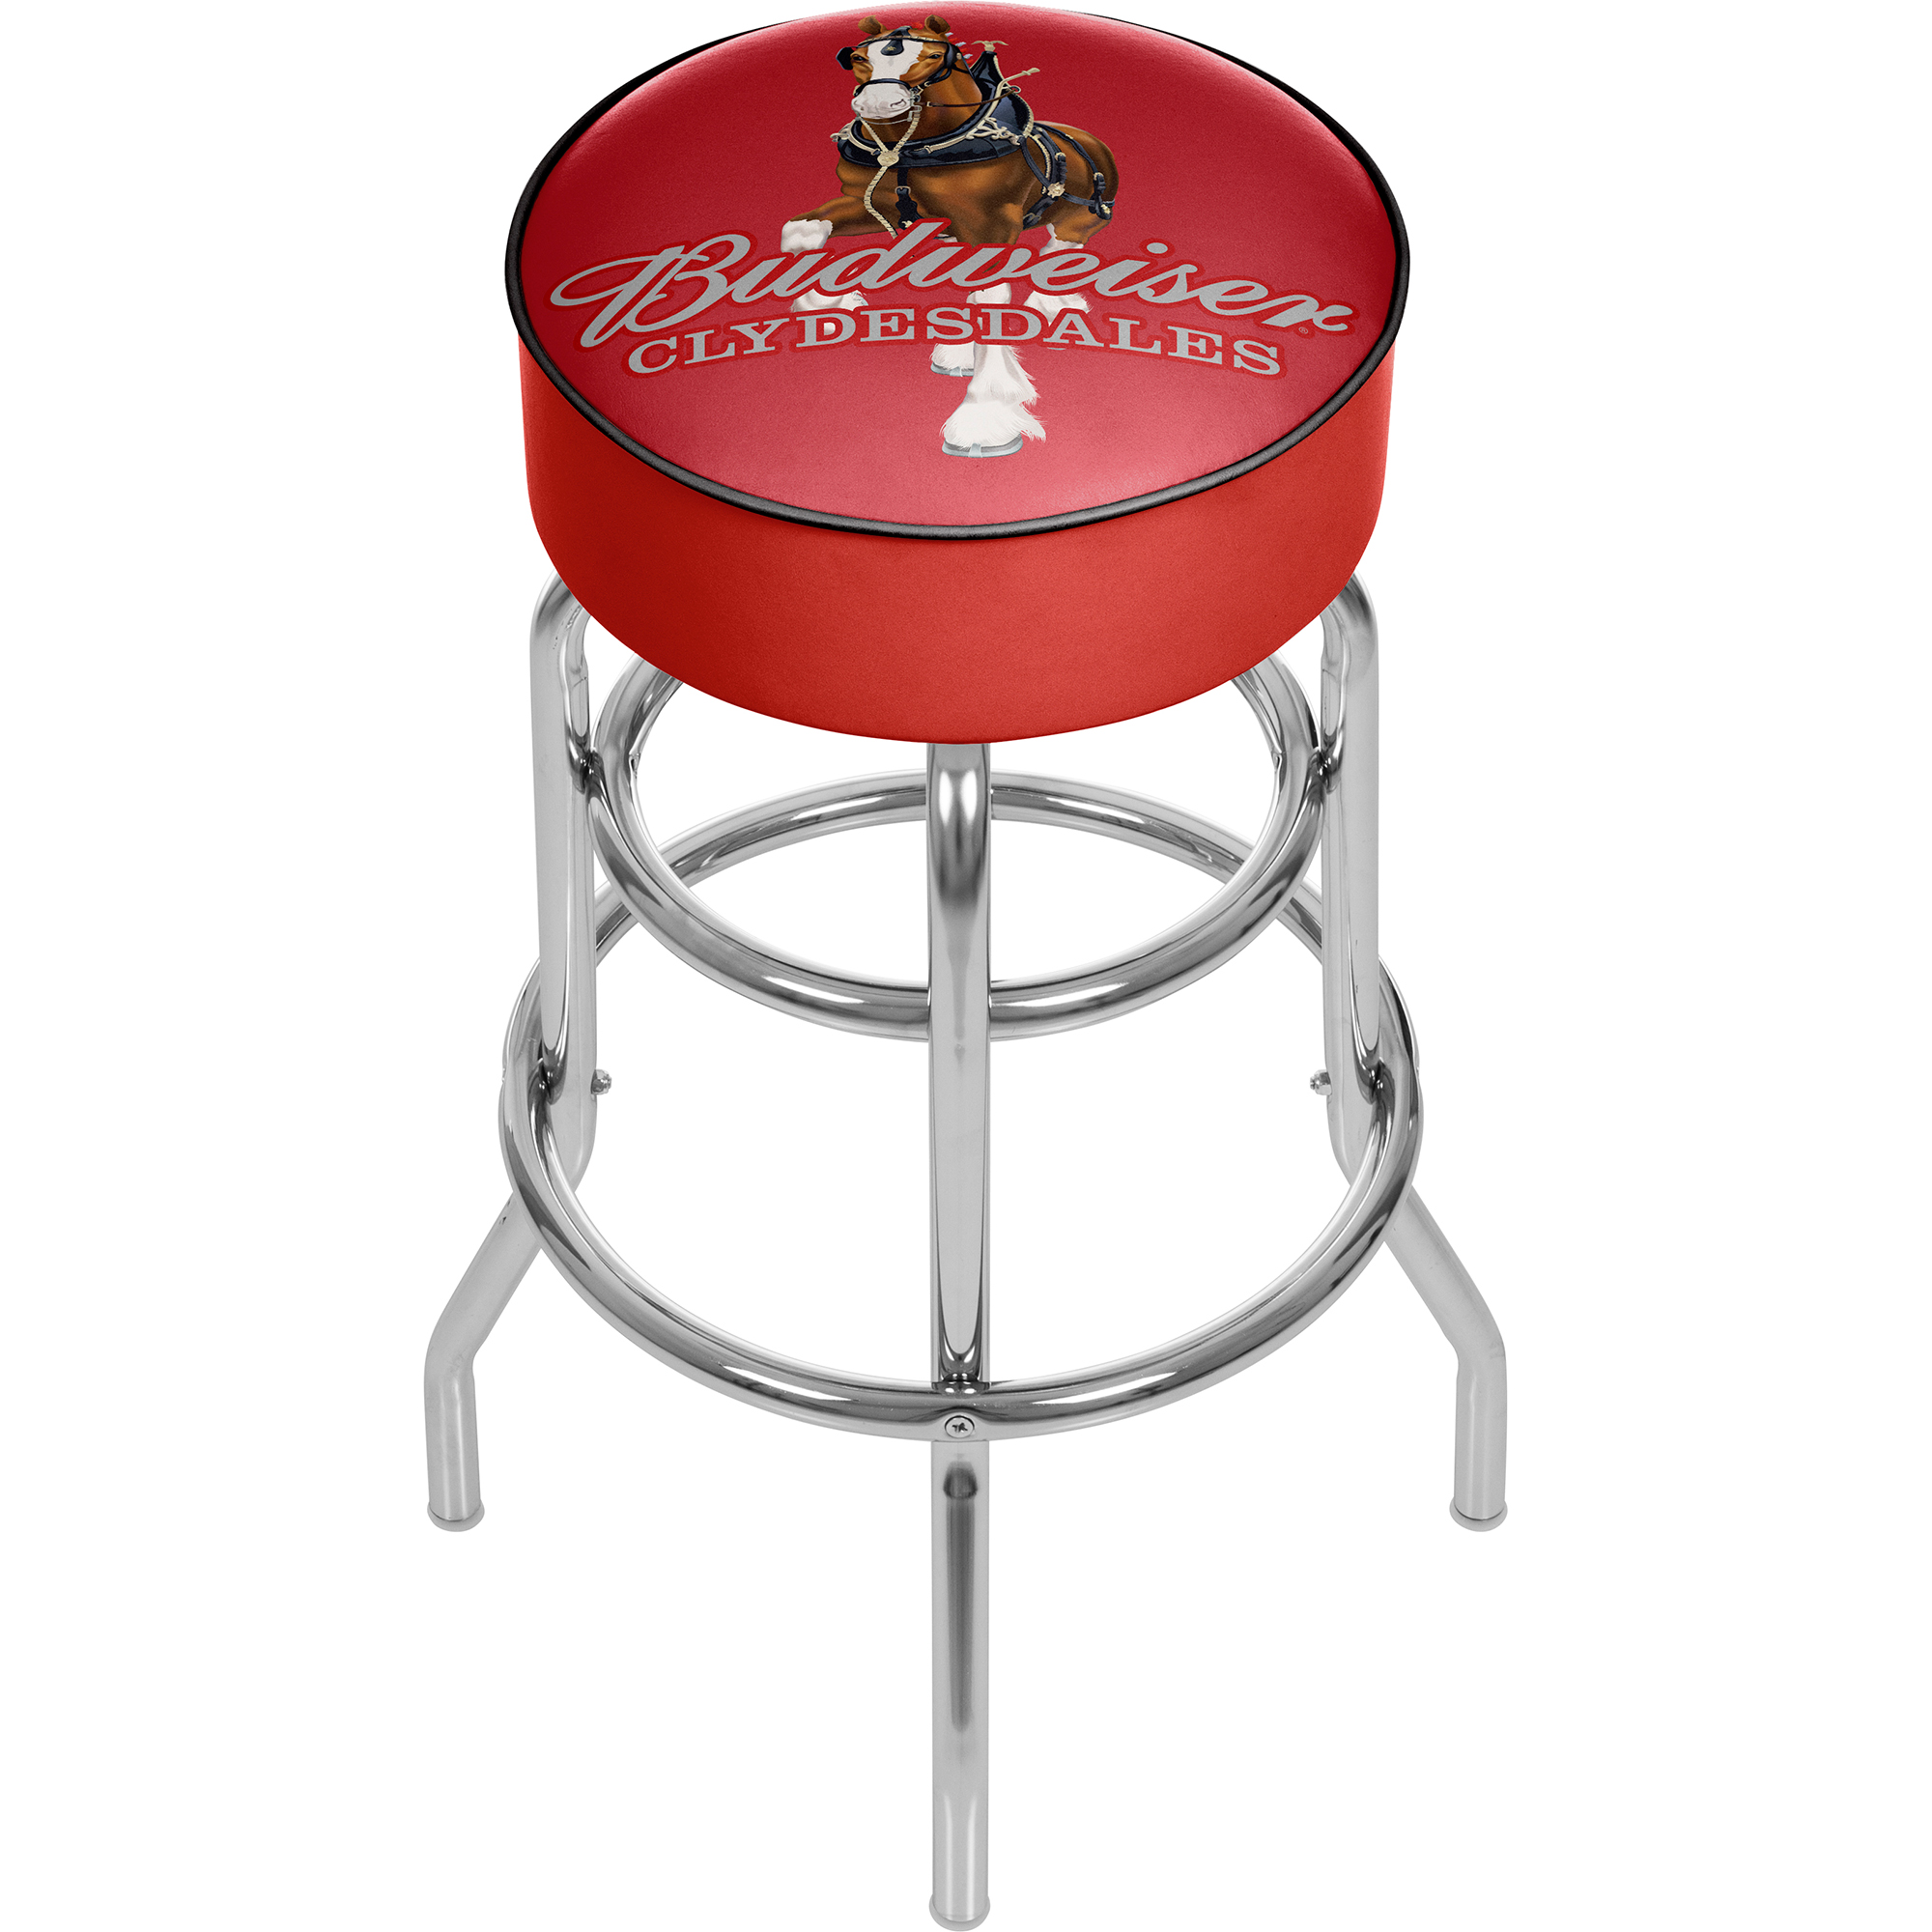 Budweiser Padded Swivel Bar Stool - Clydesdale Red